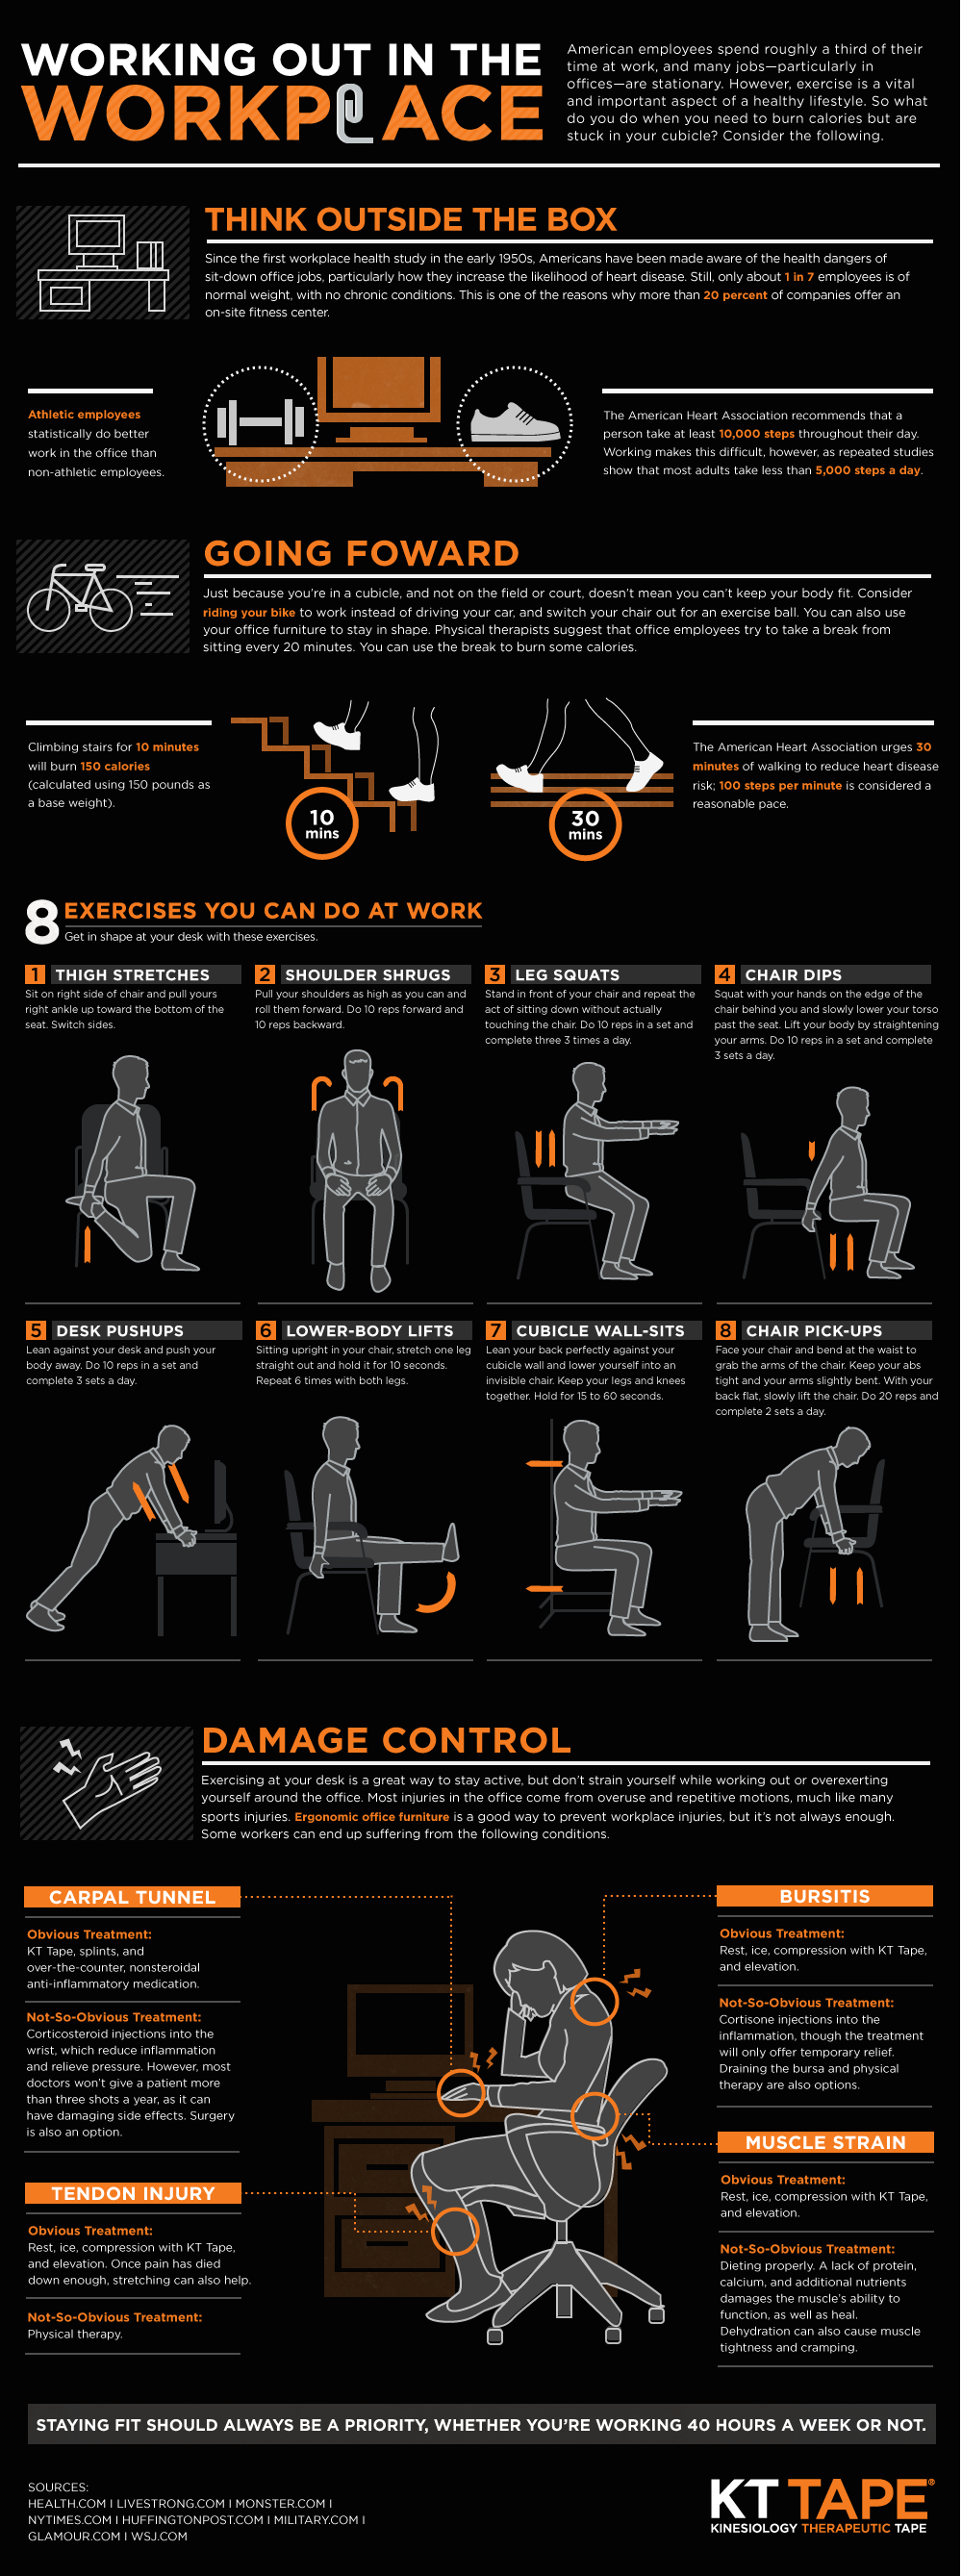 Working Out In The Workplace - 8 exercises that you can do at work!